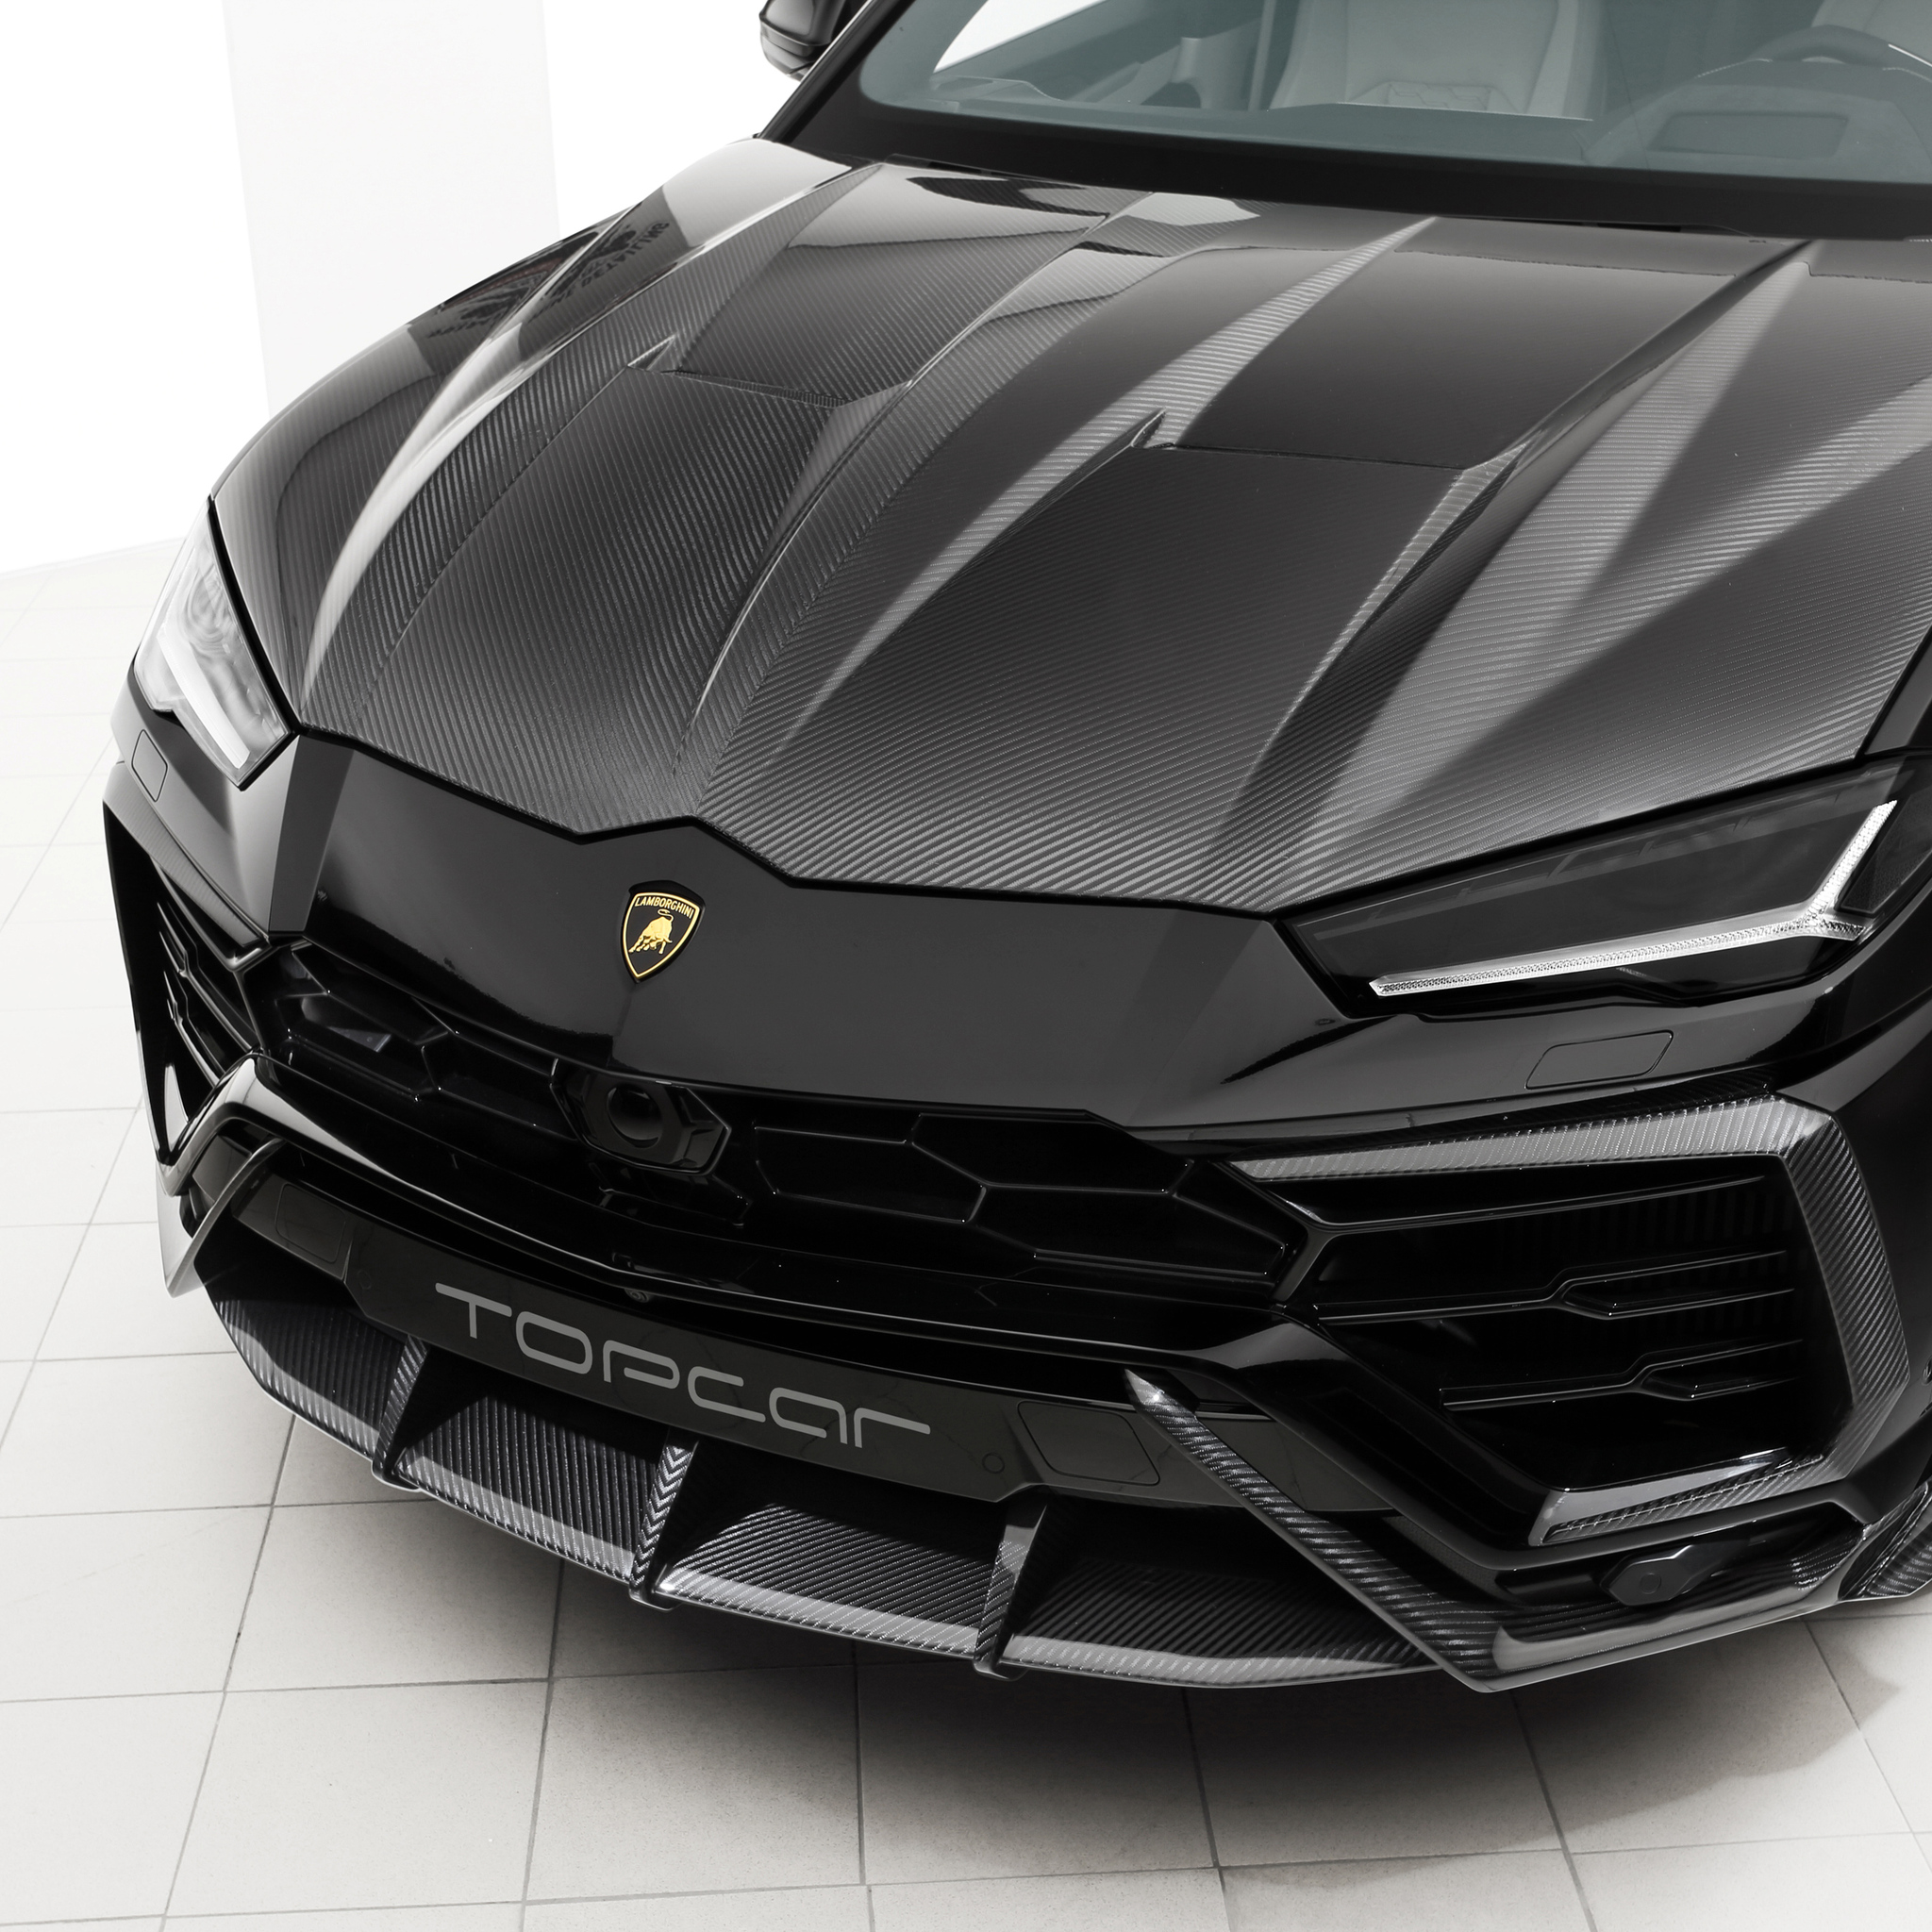 2048x2048 Lamborghini Urus Photoshoot 2018 Ipad Air Hd 4k Wallpapers